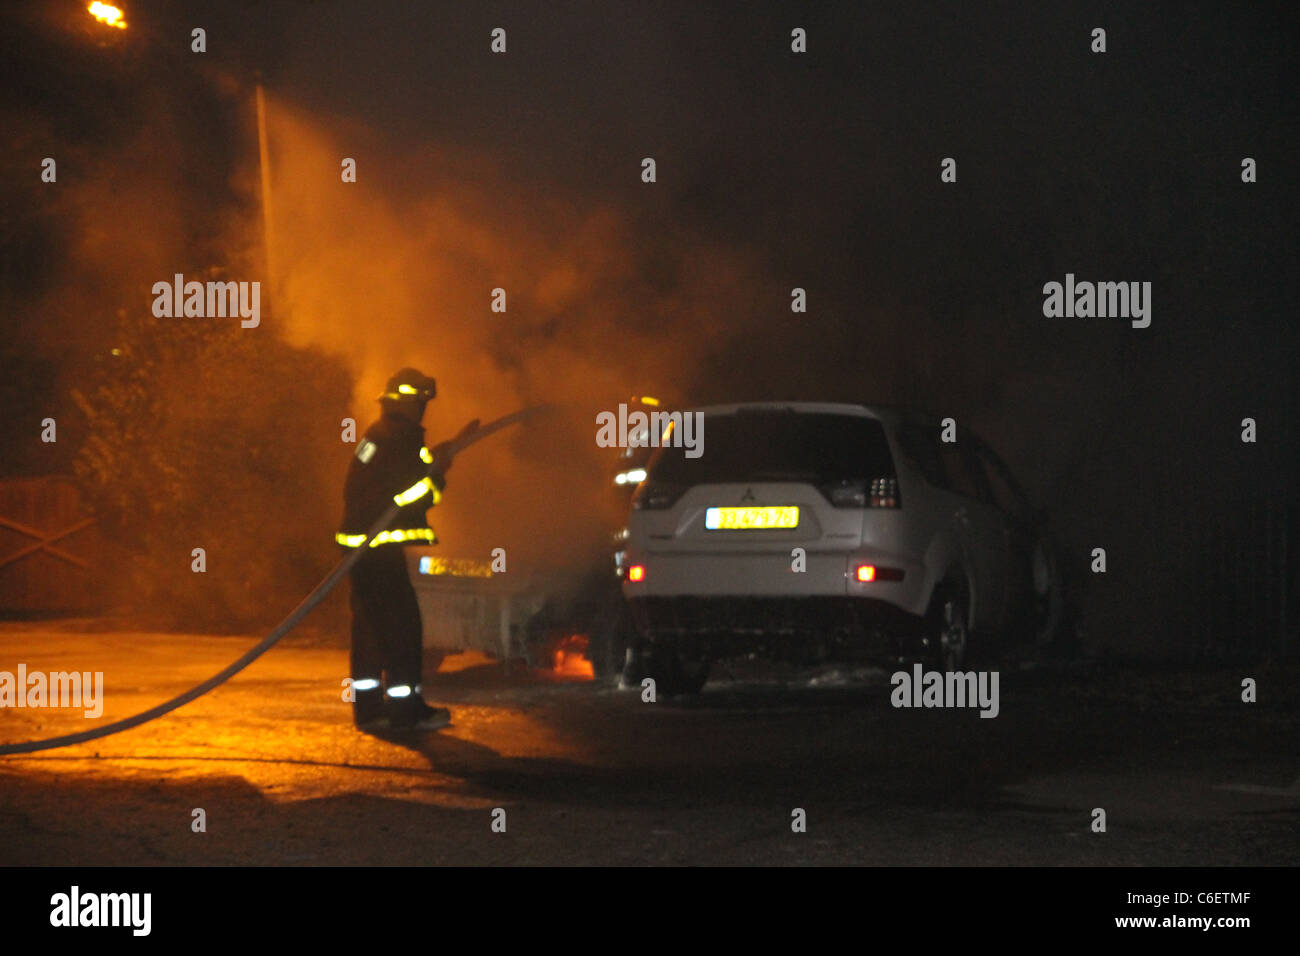 Firefighters extinguish flames in a car after an accident - Stock Image